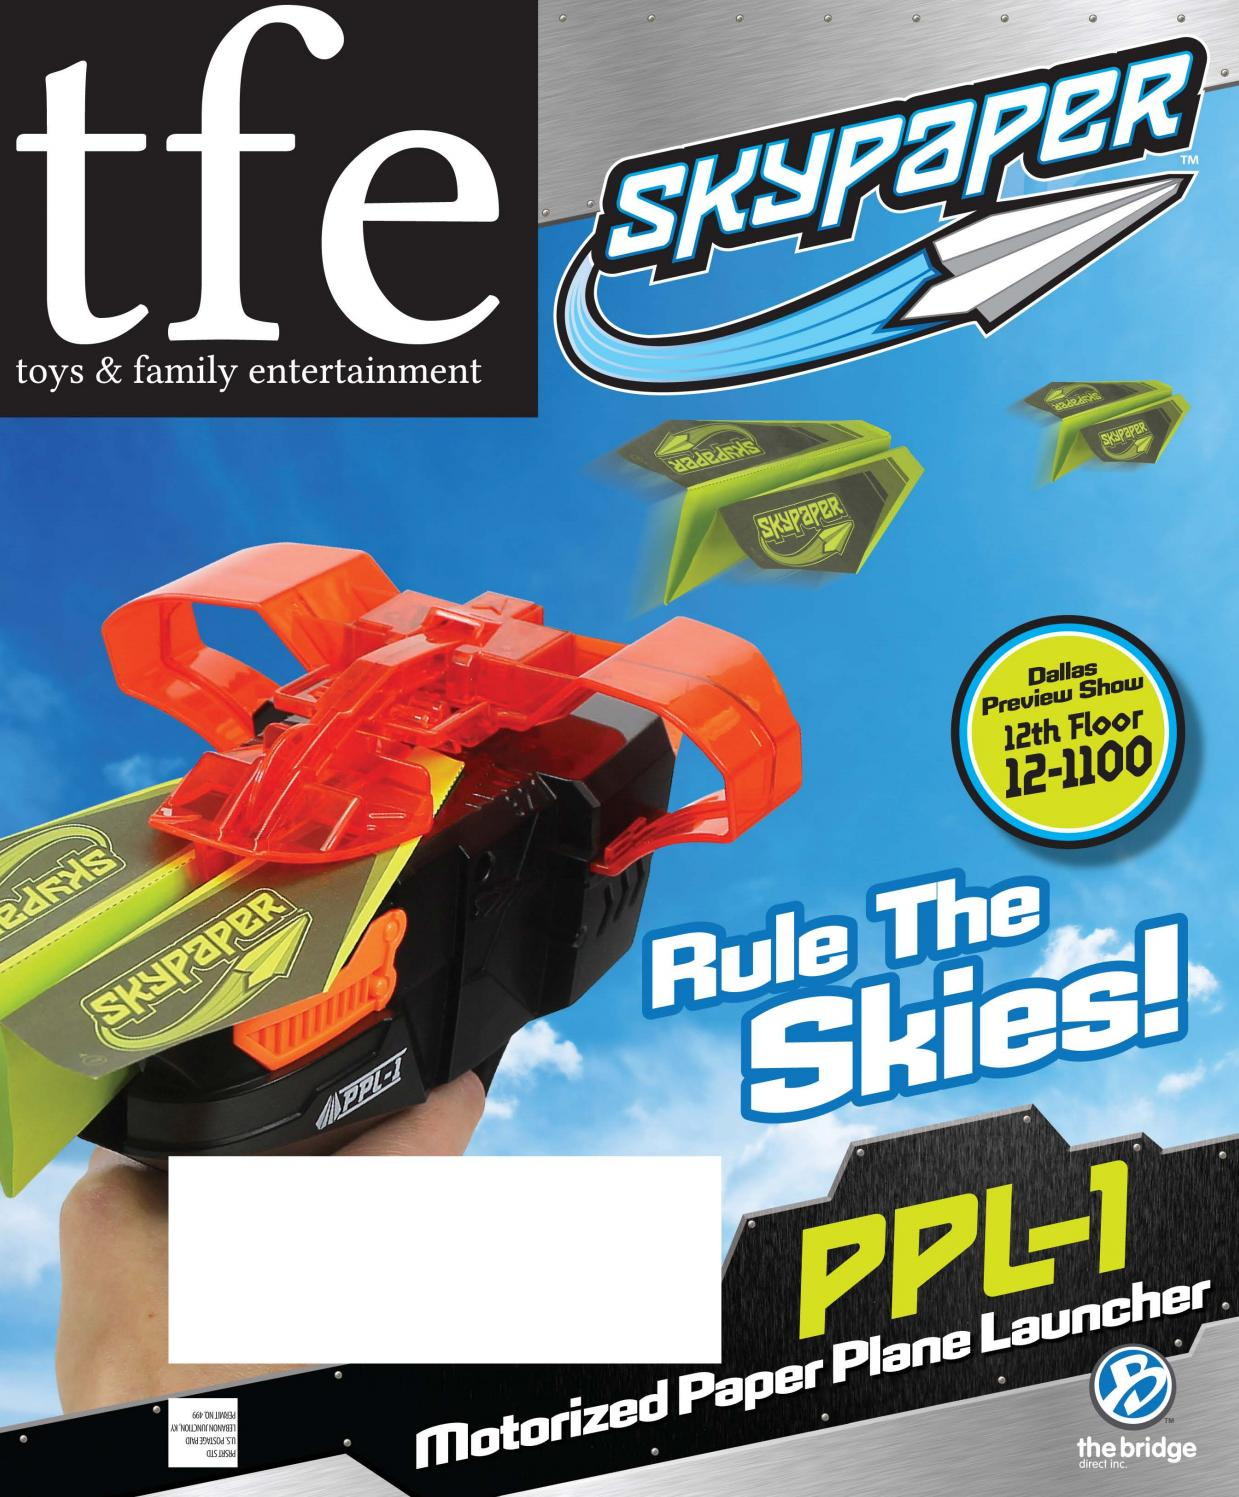 New Skypaper PPL-1 Paper Plane Launcher w//24 Planes Choice of White or Black